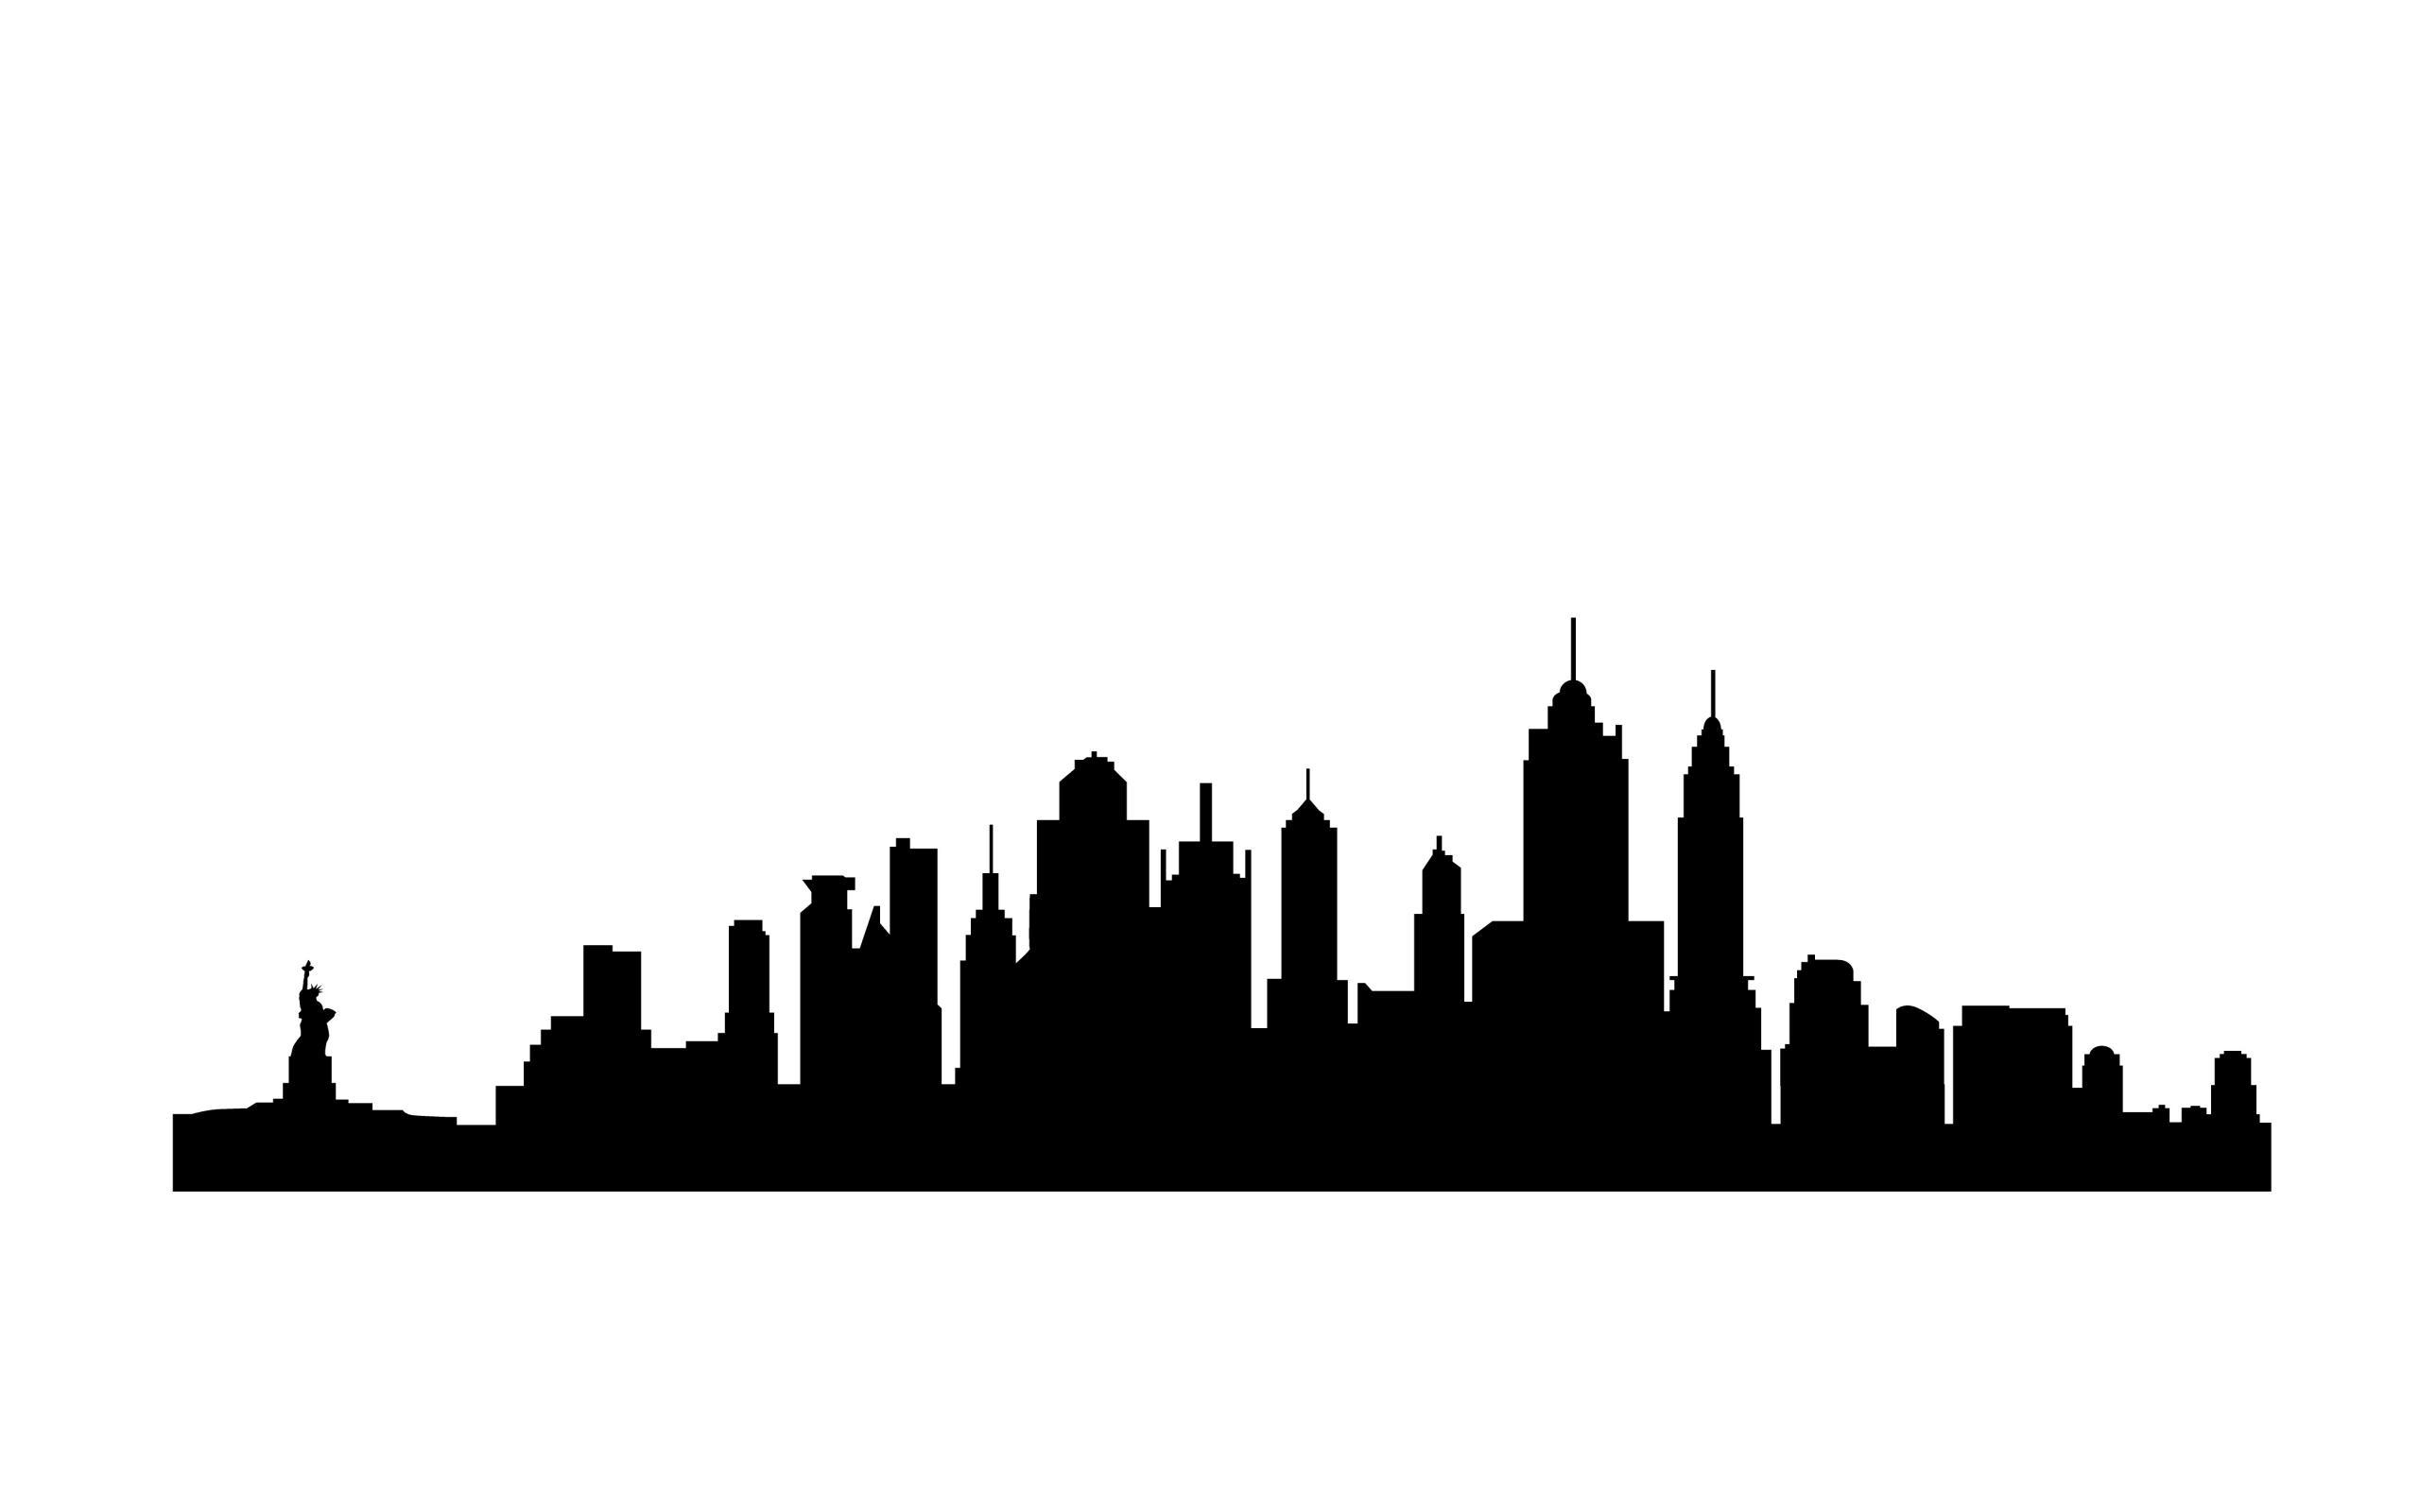 New york city clipart skyline png royalty free stock New york city clipart skyline 4 » Clipart Portal png royalty free stock